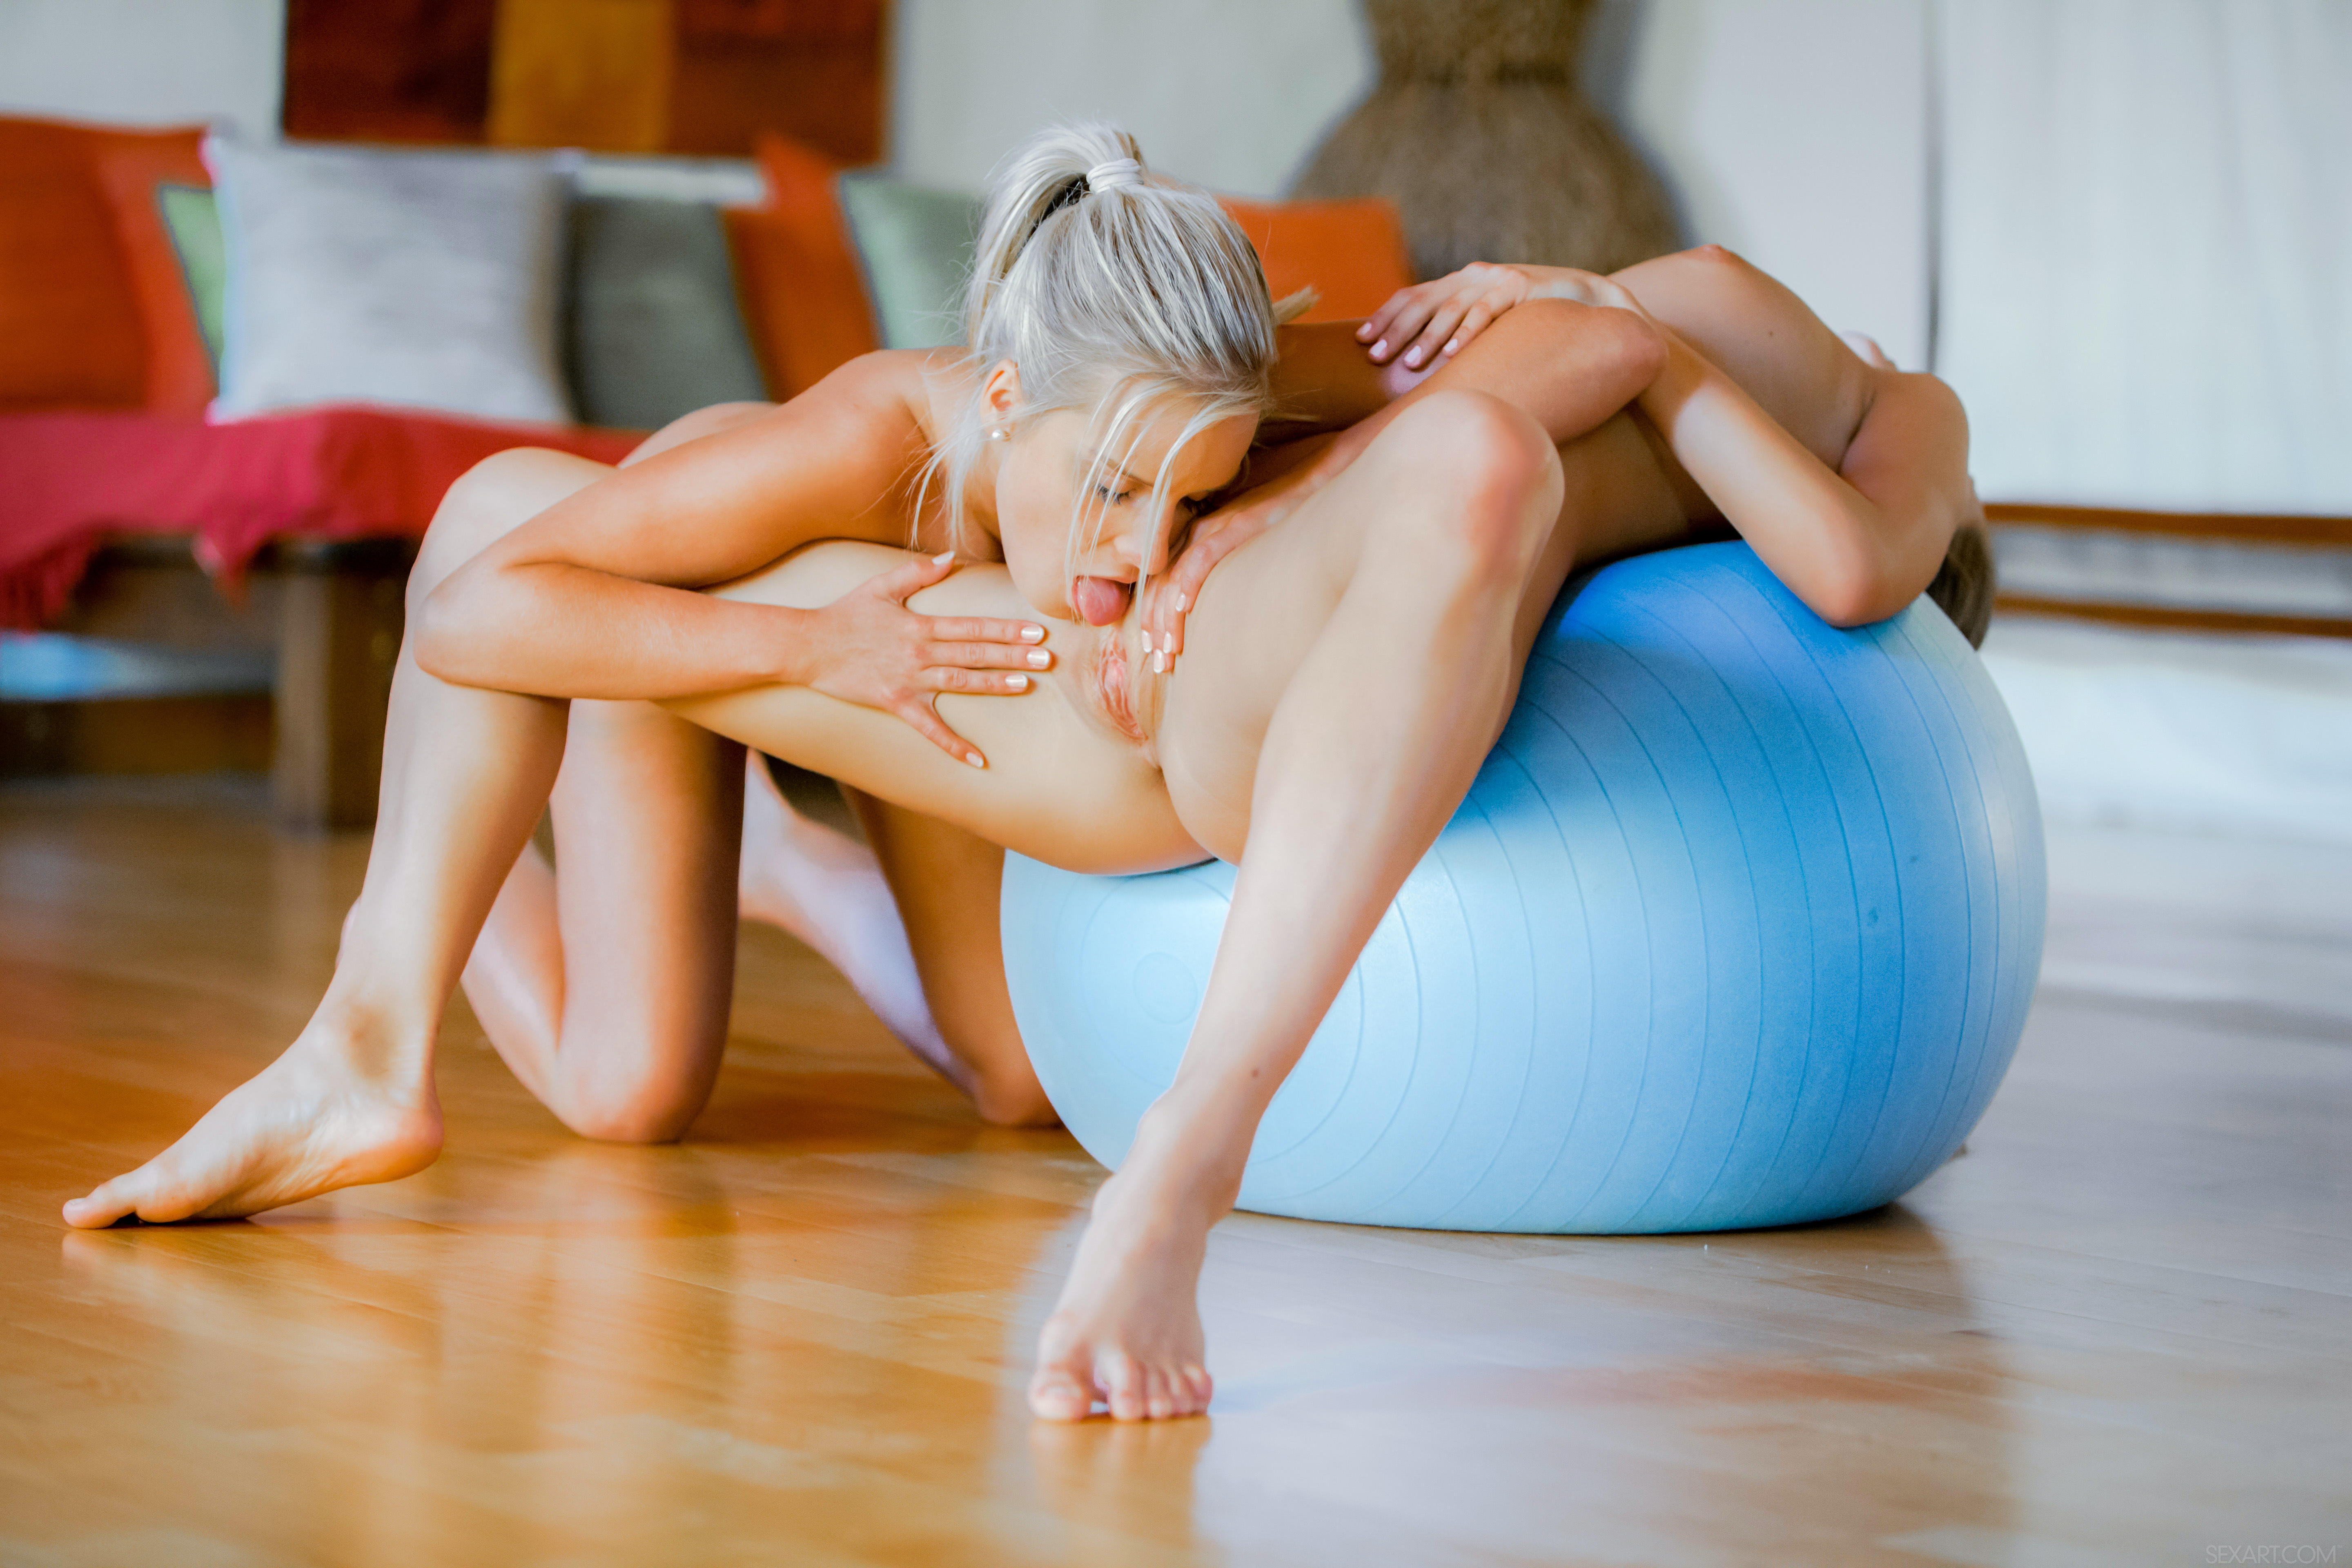 exercise equipment Lesbian sex with